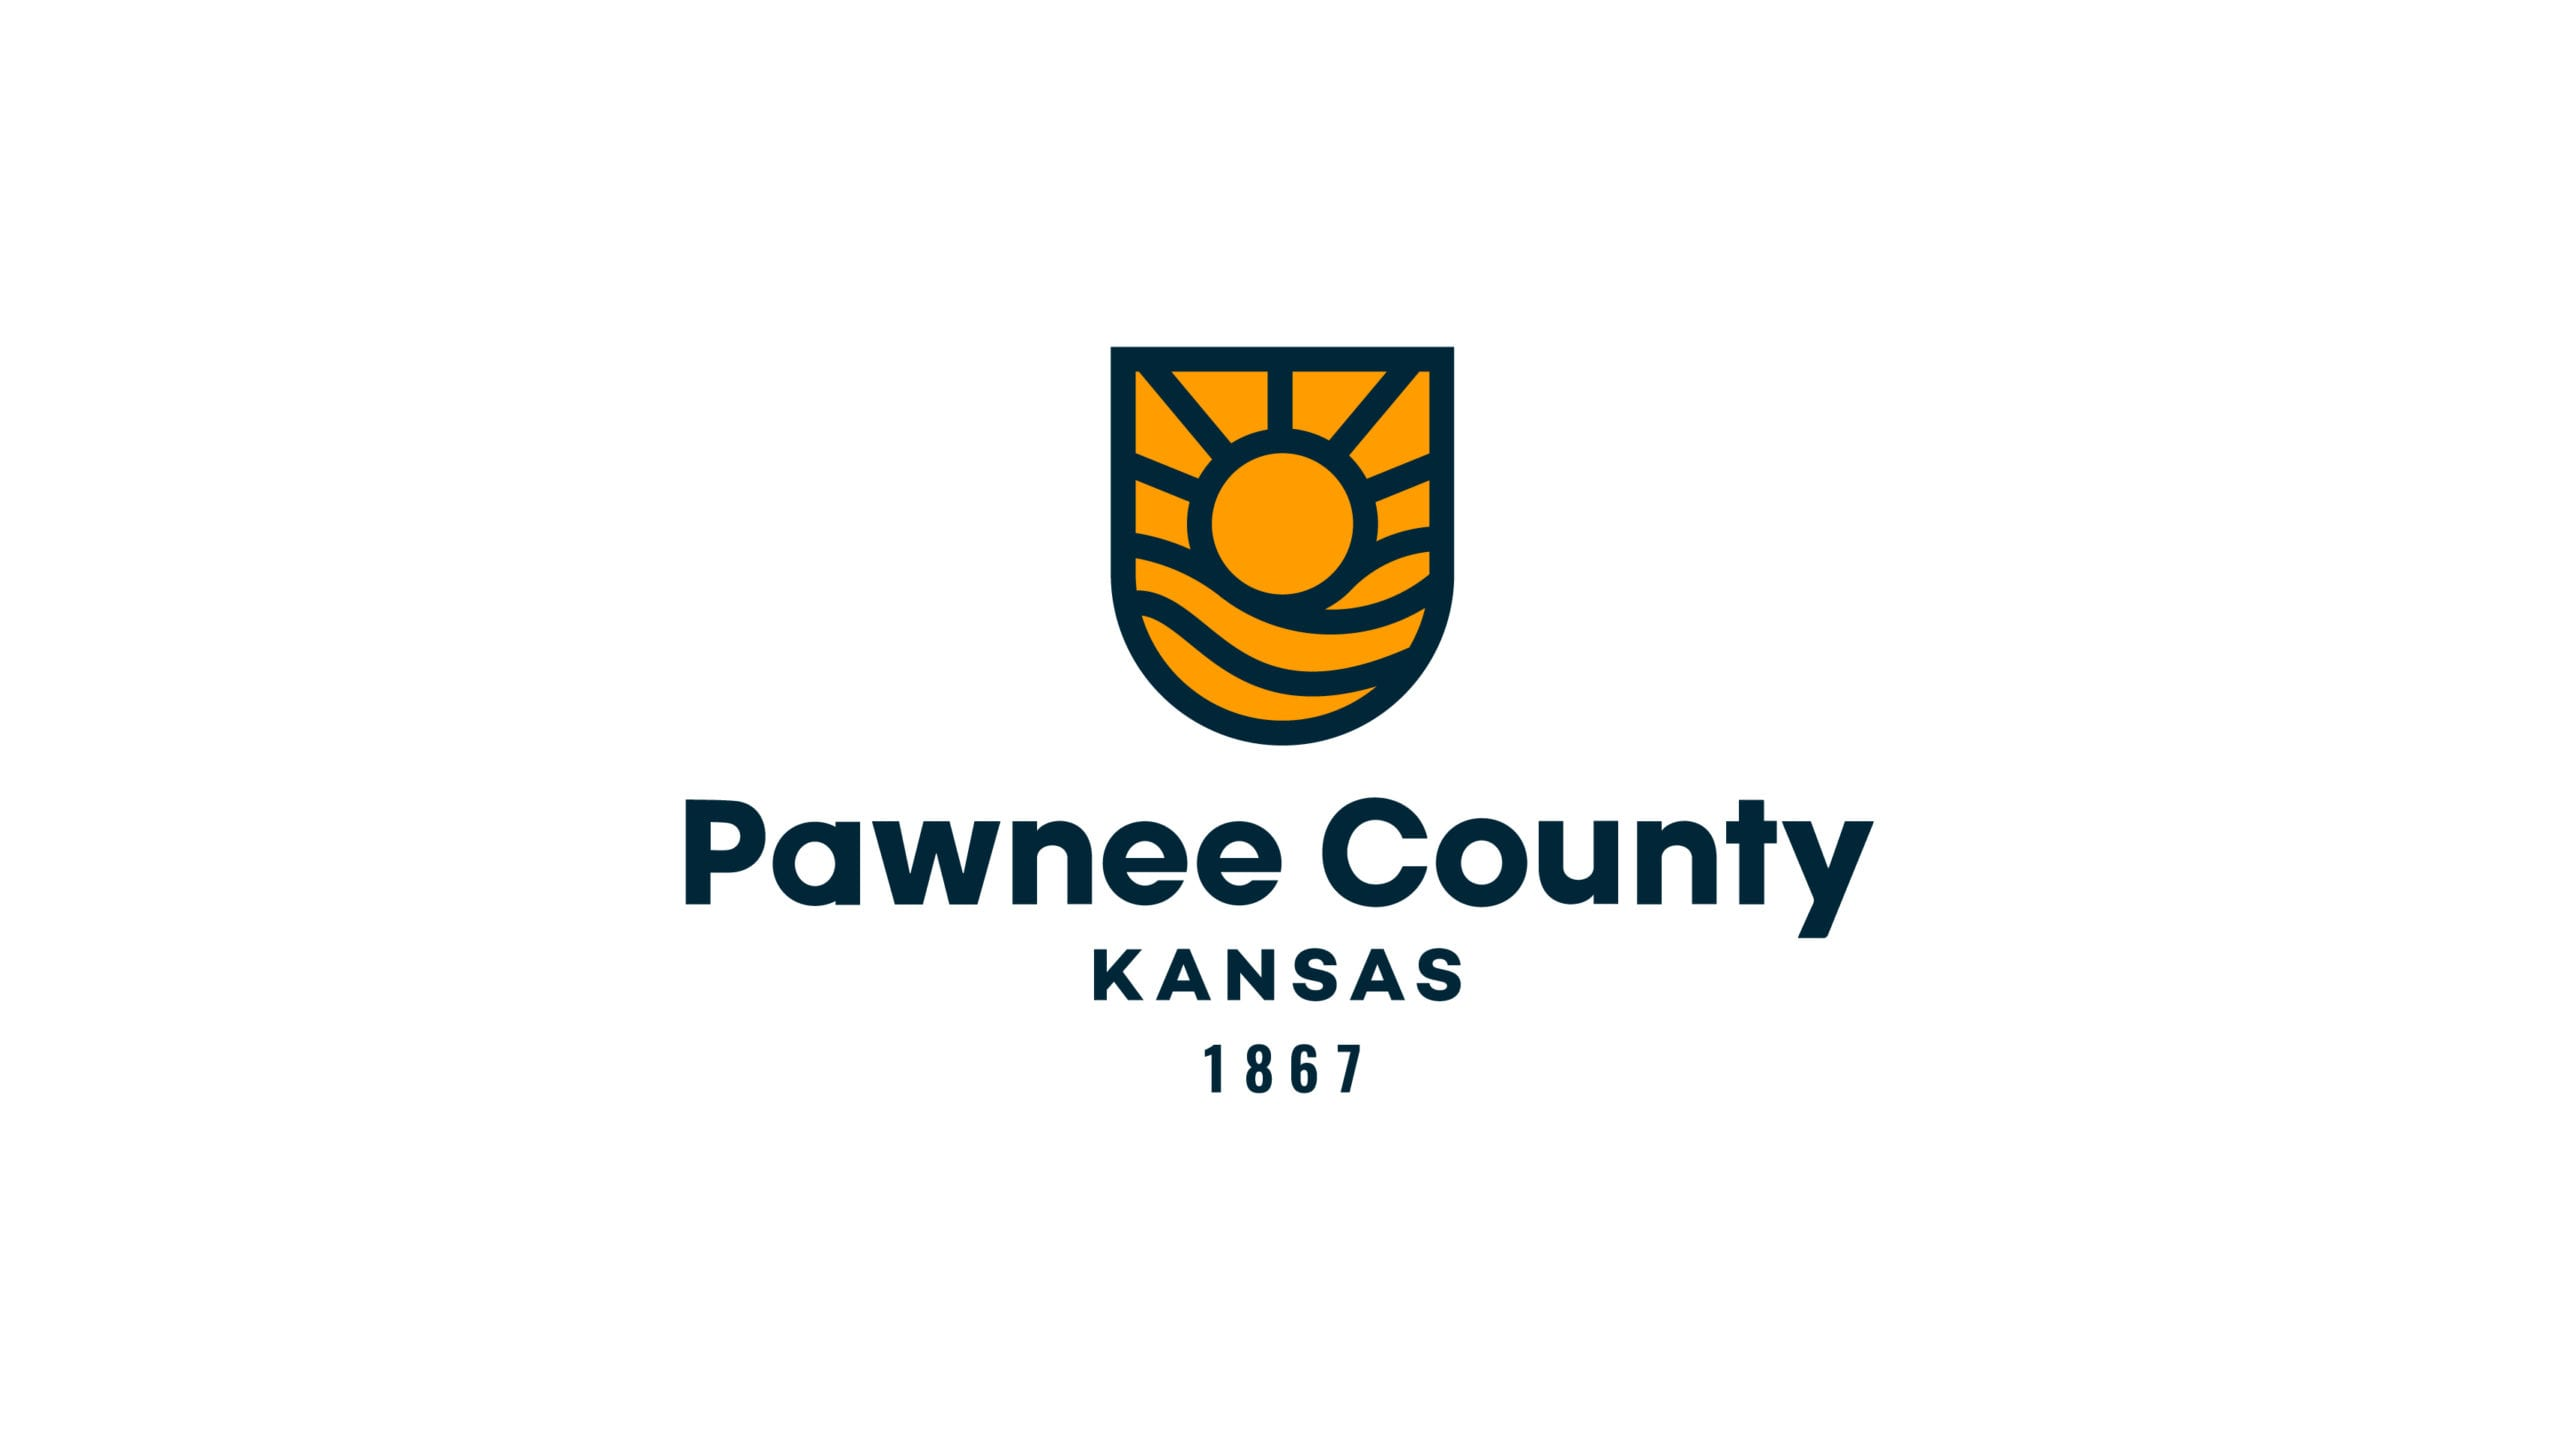 Pawnee County Kansas Logo